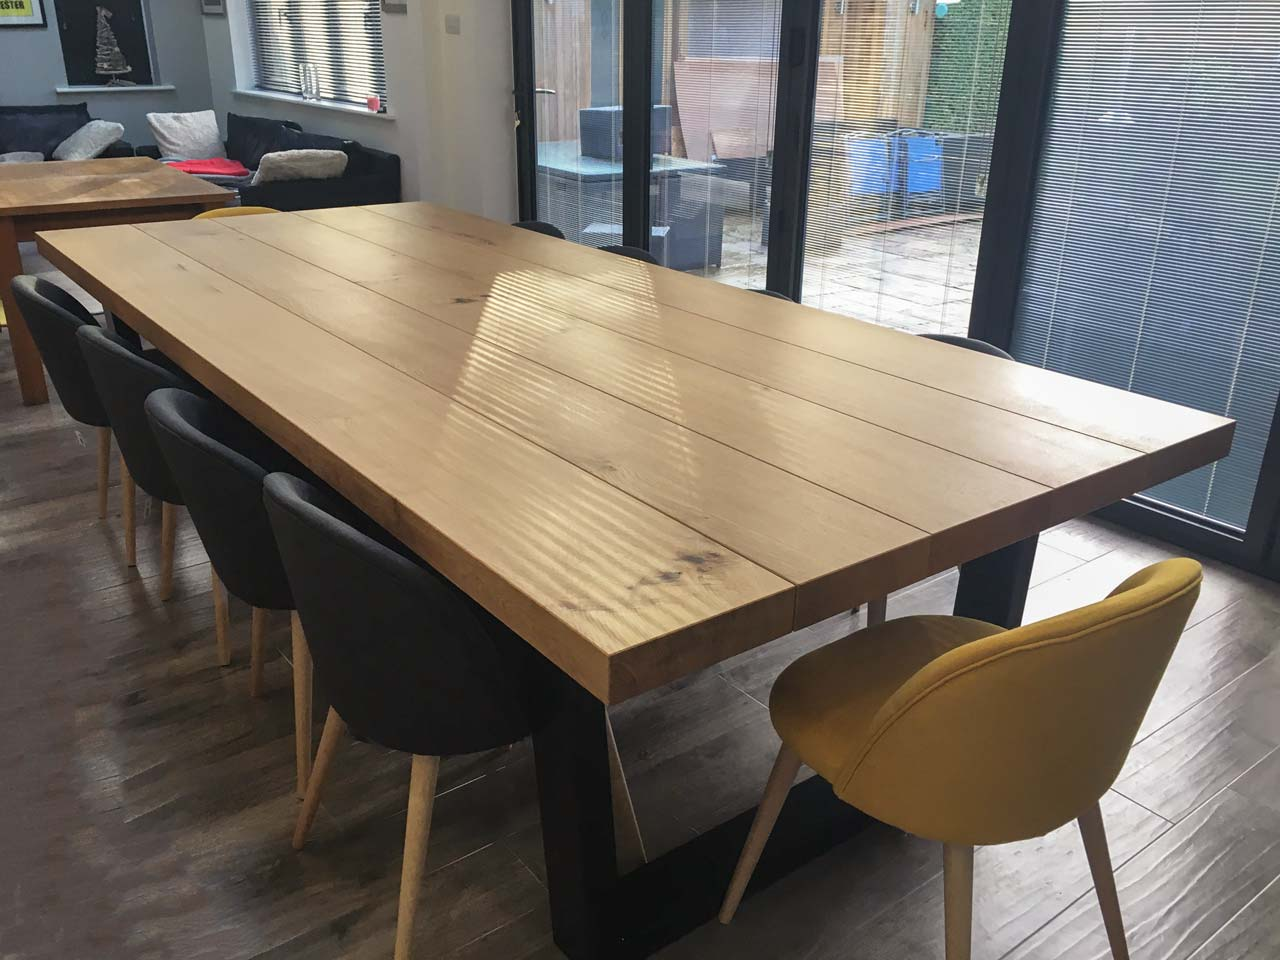 10-seater-dining-table-project-728-abacus-tables-pic2